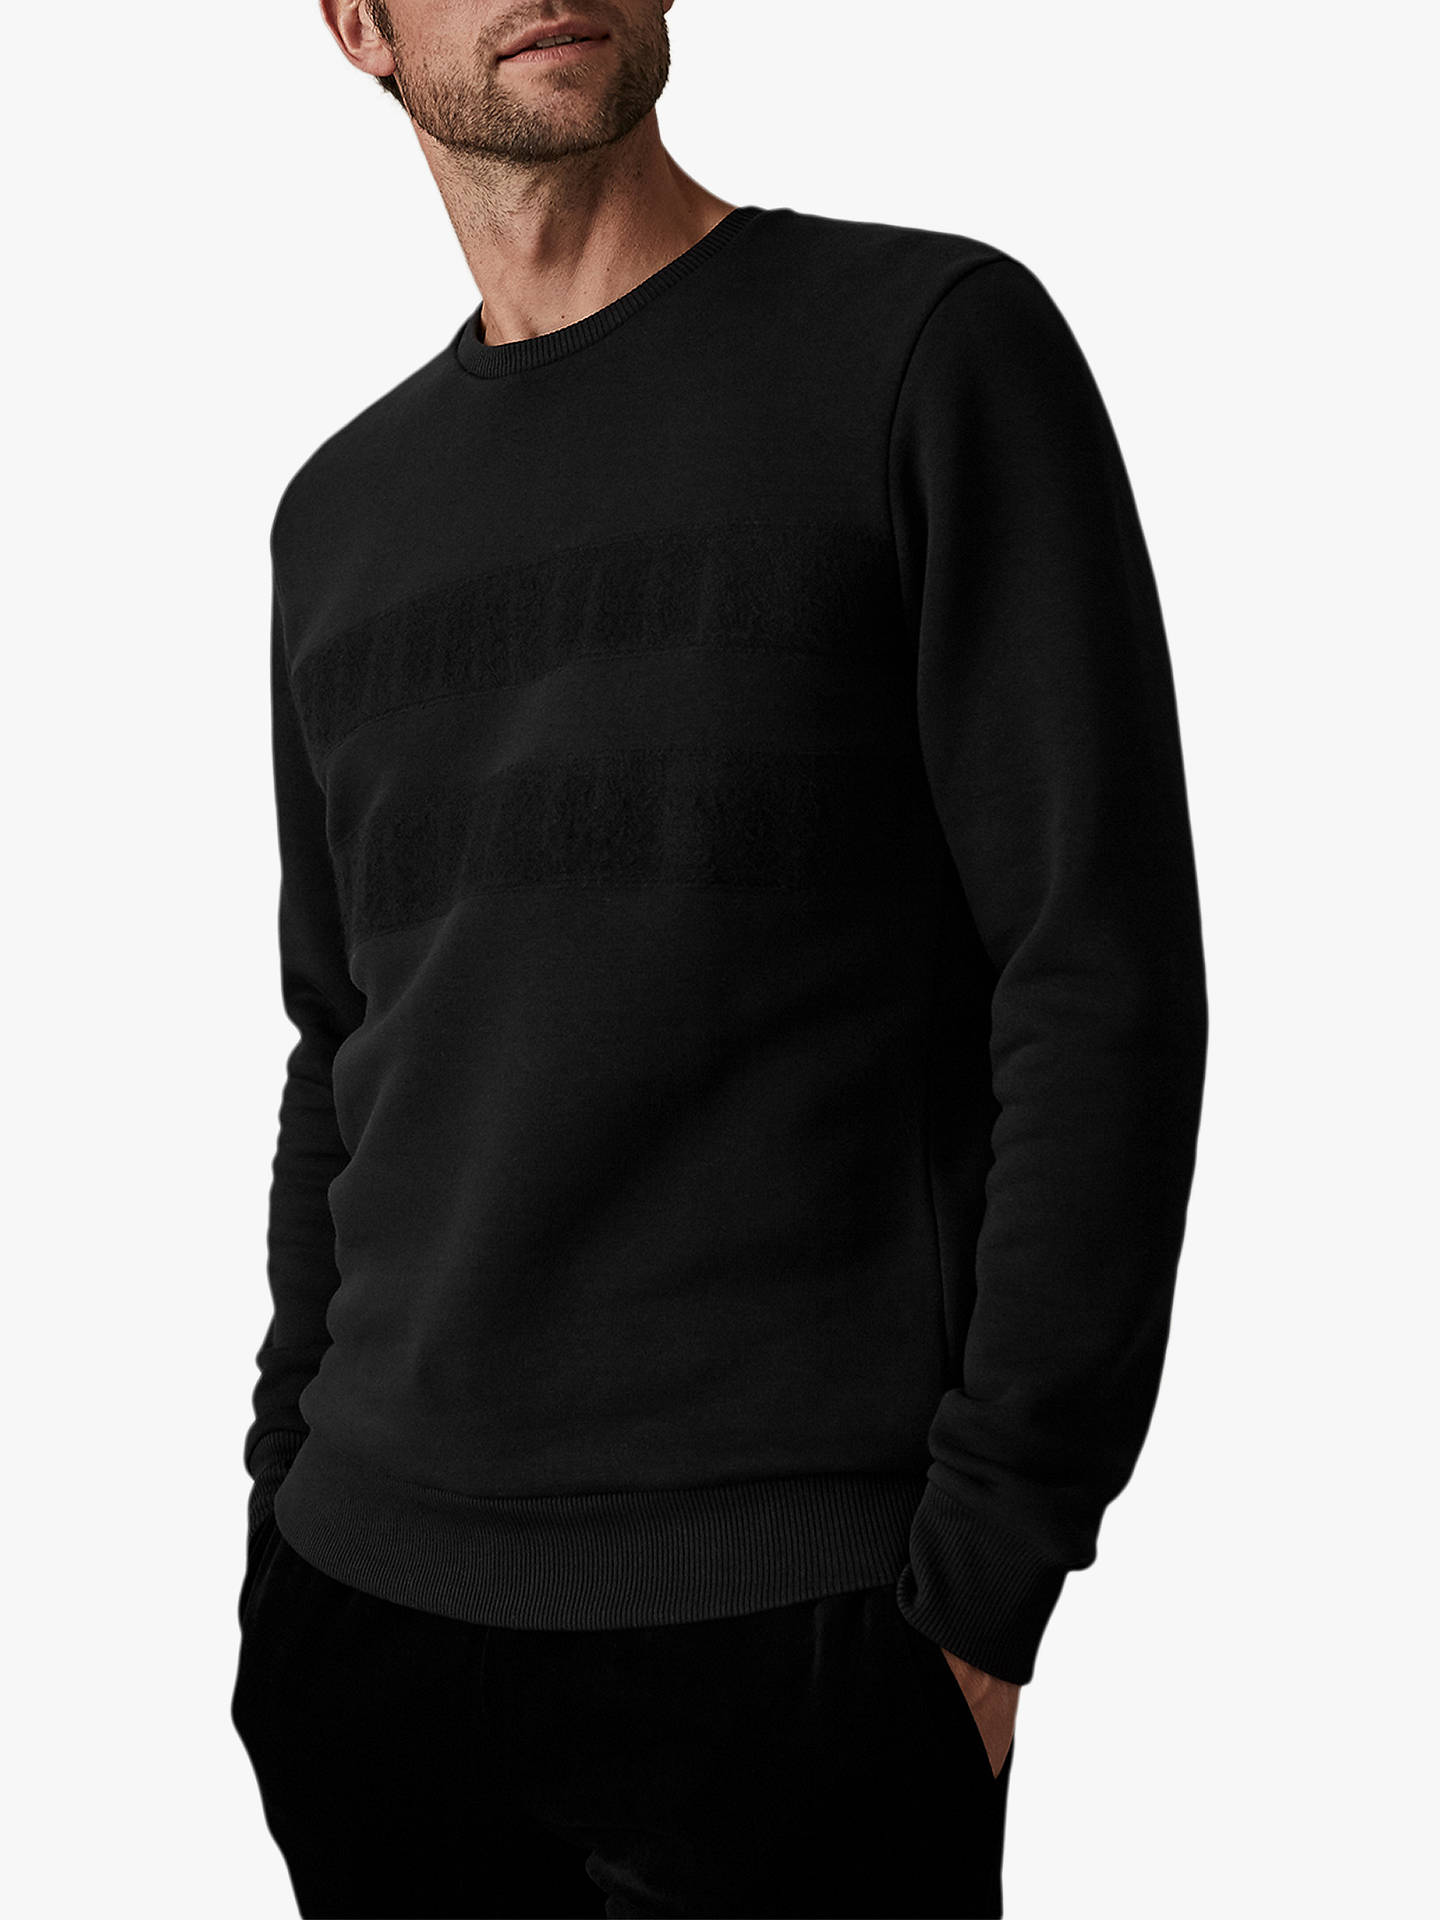 BuyReiss Alec Needle Punch Sweatshirt, Black, S Online at johnlewis.com